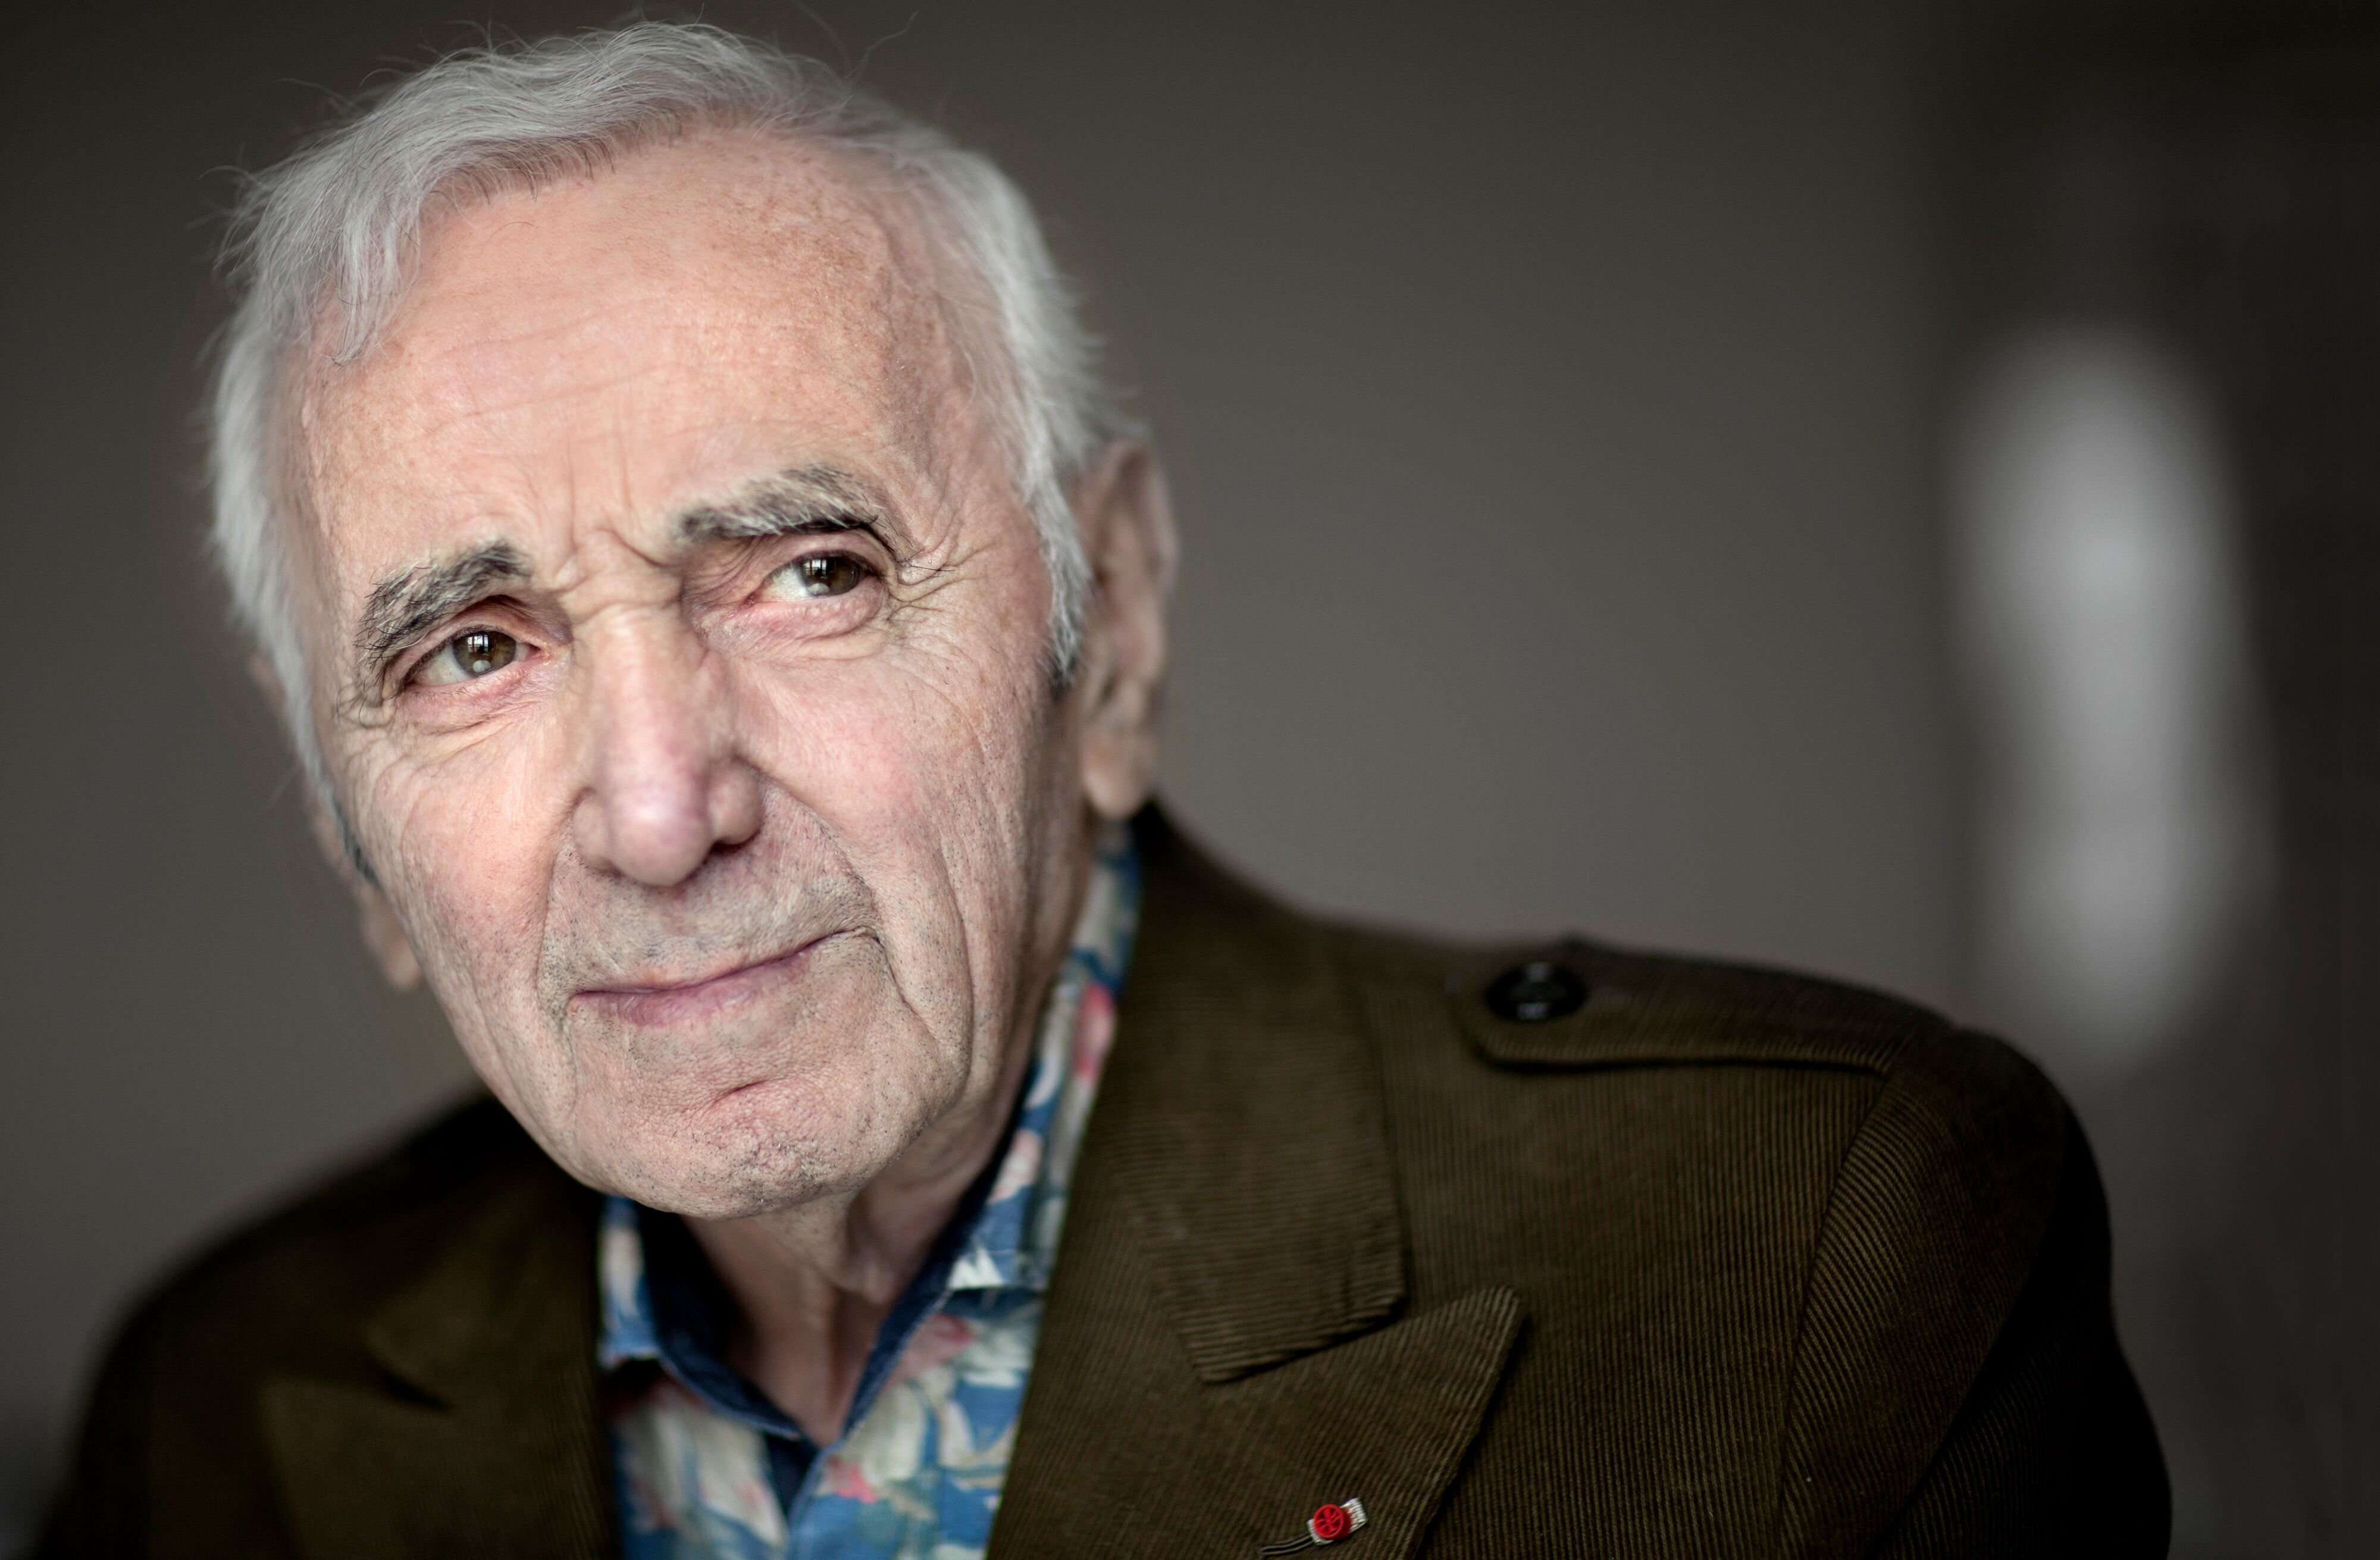 Le chanteur français Charles Aznavour photographié à Madrid, Espagne, le 26 avril 2015. | Photo : GettyImage